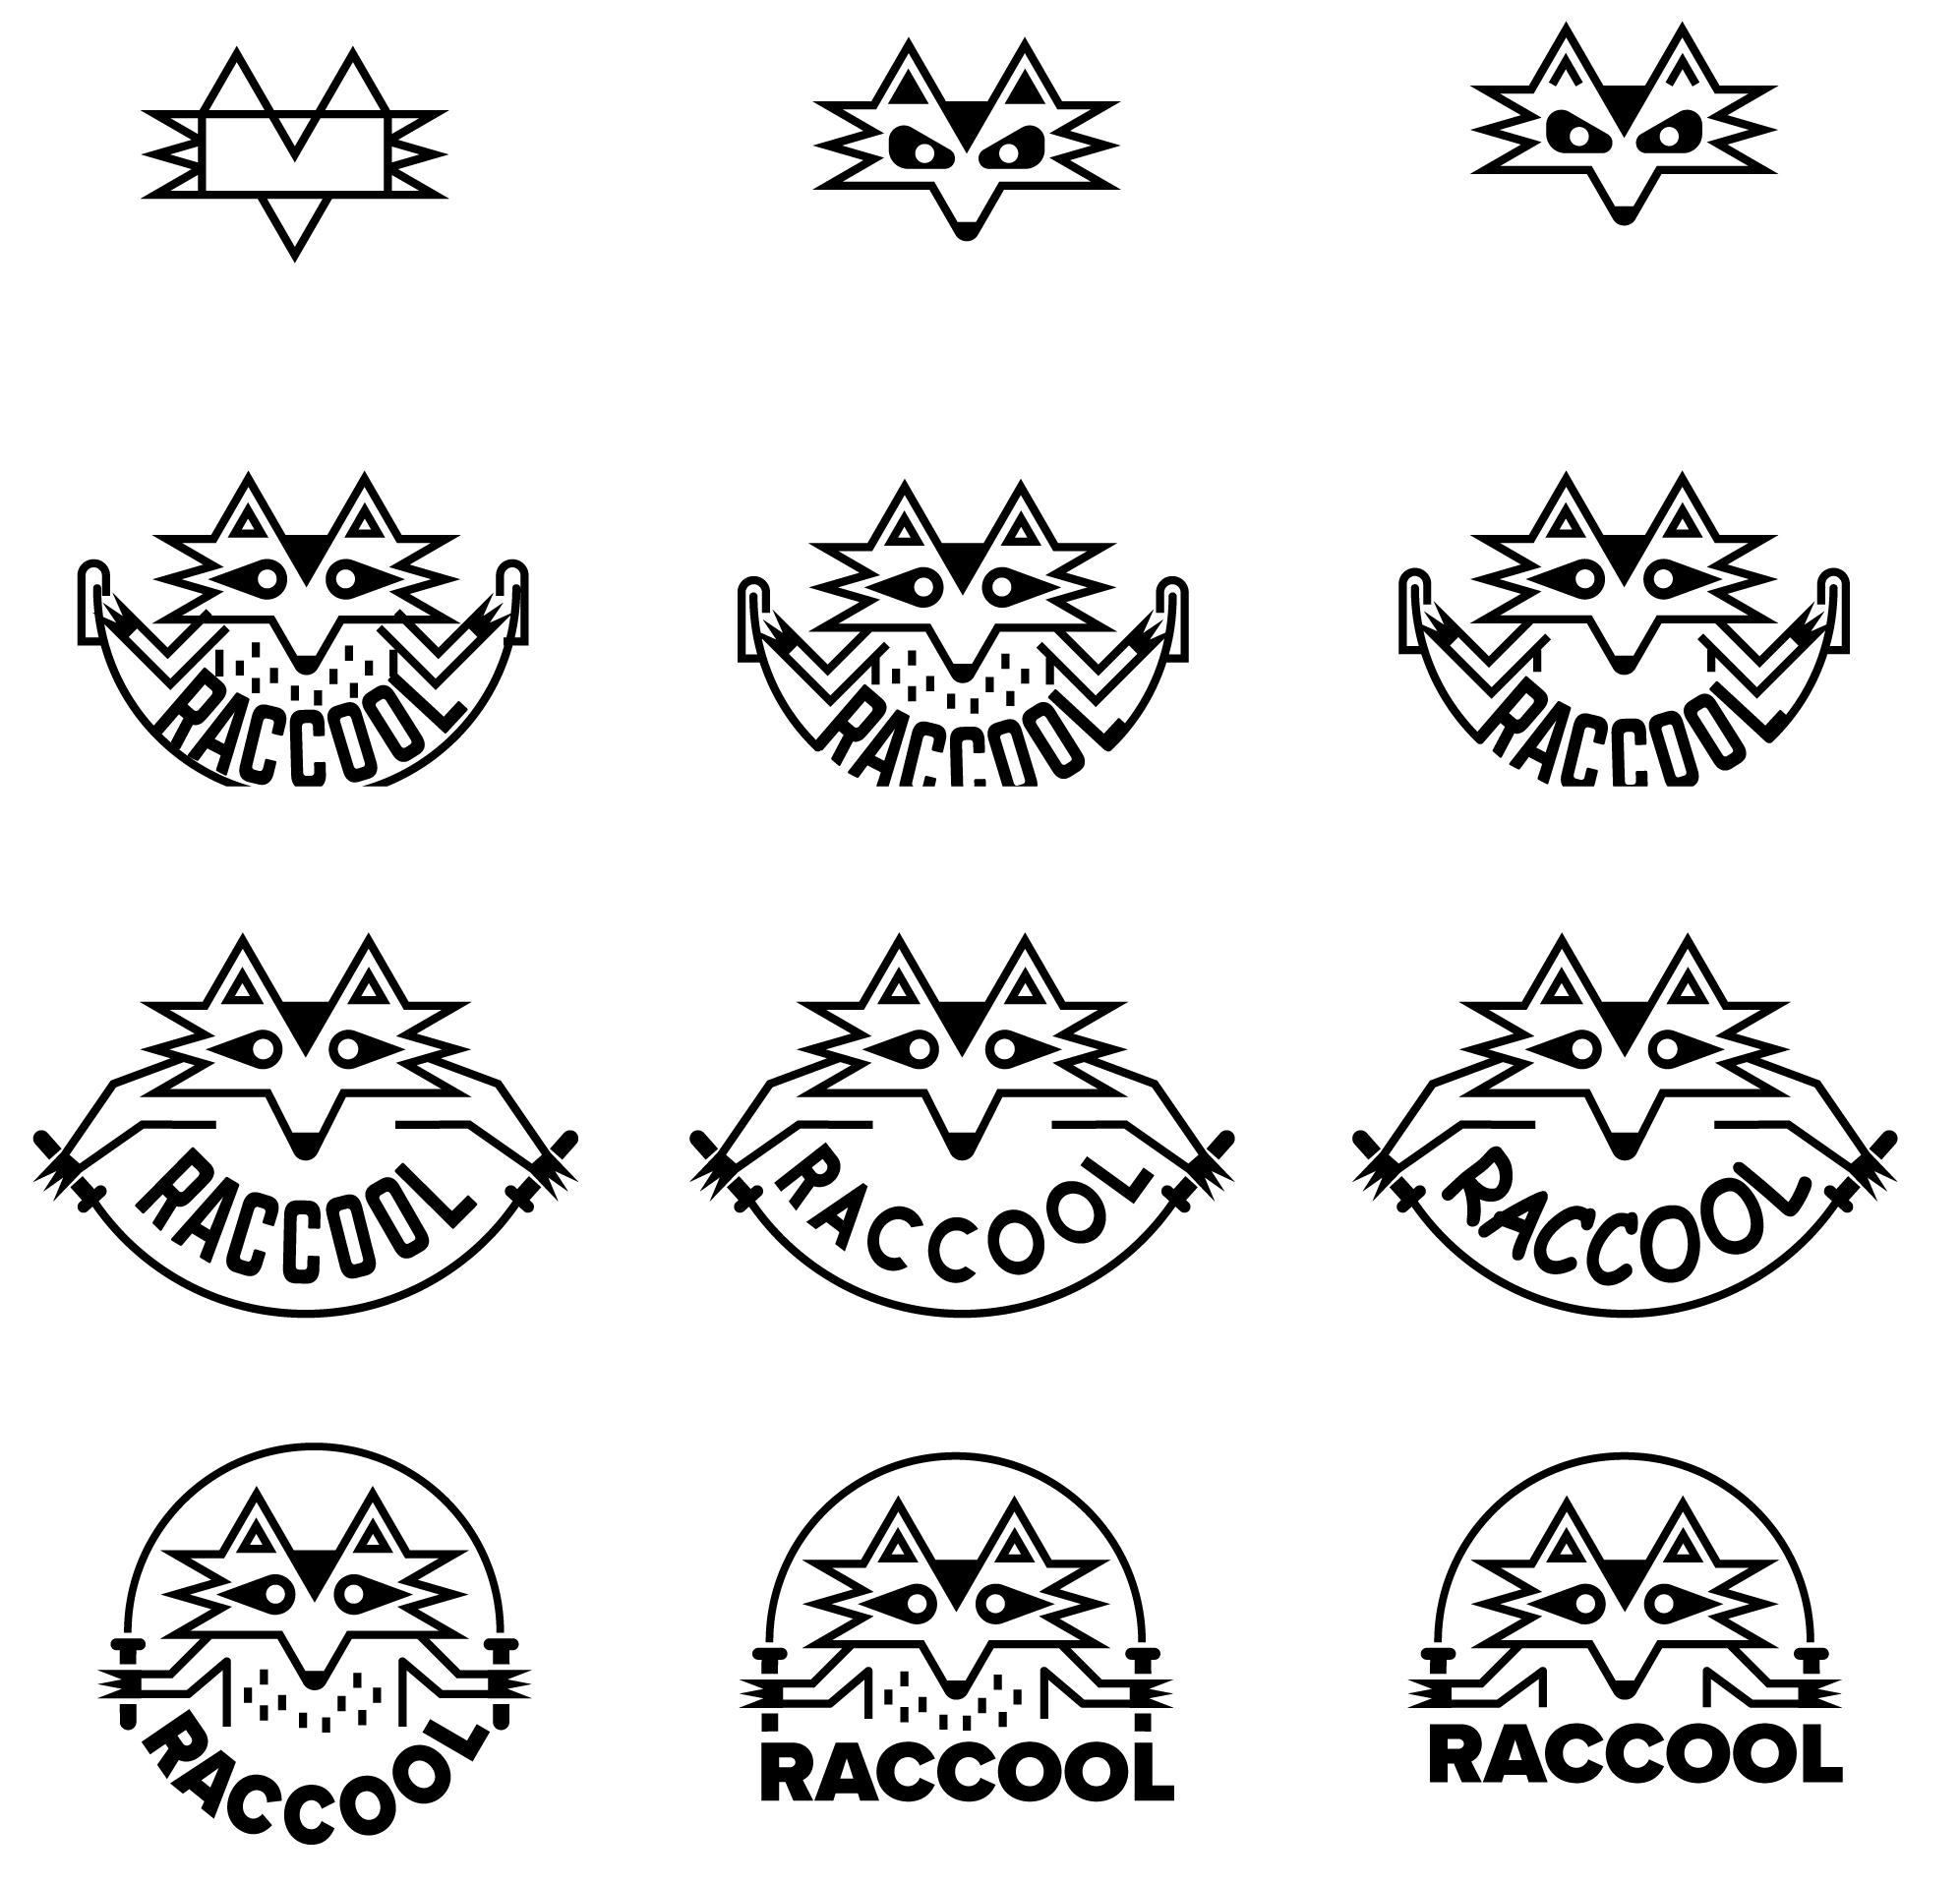 raccool logo design raccoon fitnes jumping ropes vector art illustration graphics design digital minimal design graphic design illustrator grafica denis bettio